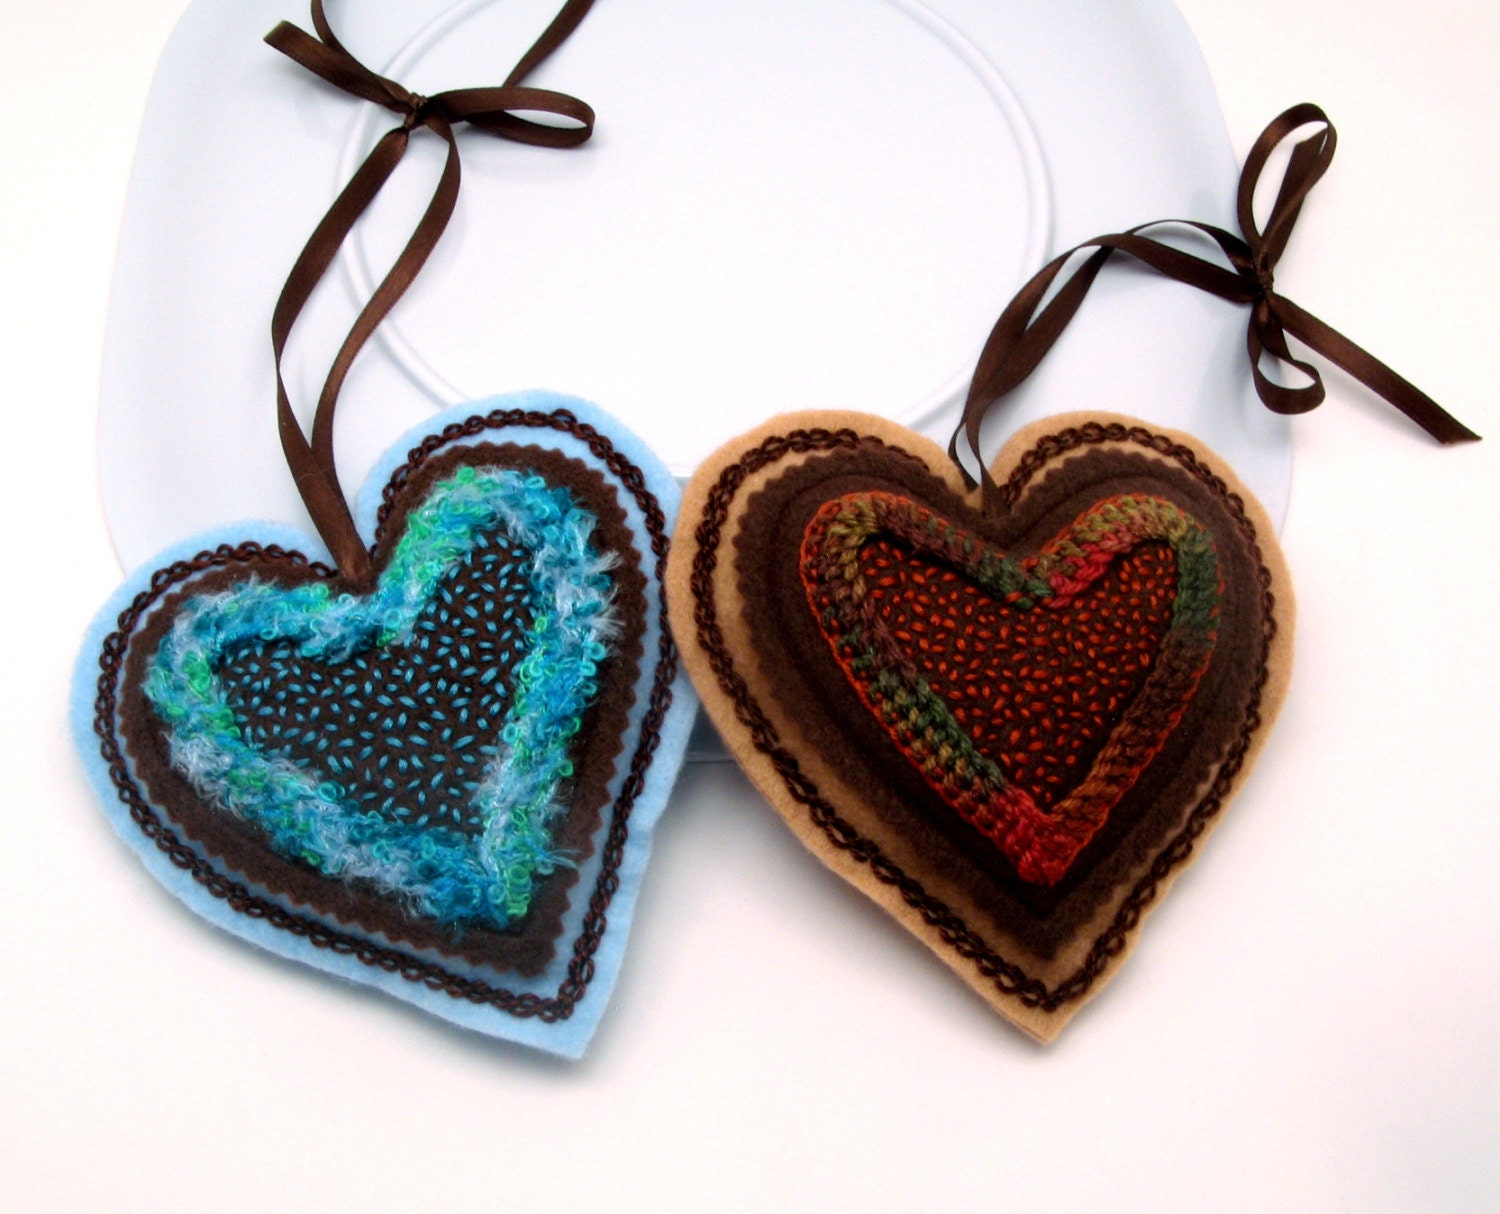 Brown and Blue Heart Ornaments, Home Decor, Felt and Embroidery Decoration, Set of Two - LaurelSusanStudio